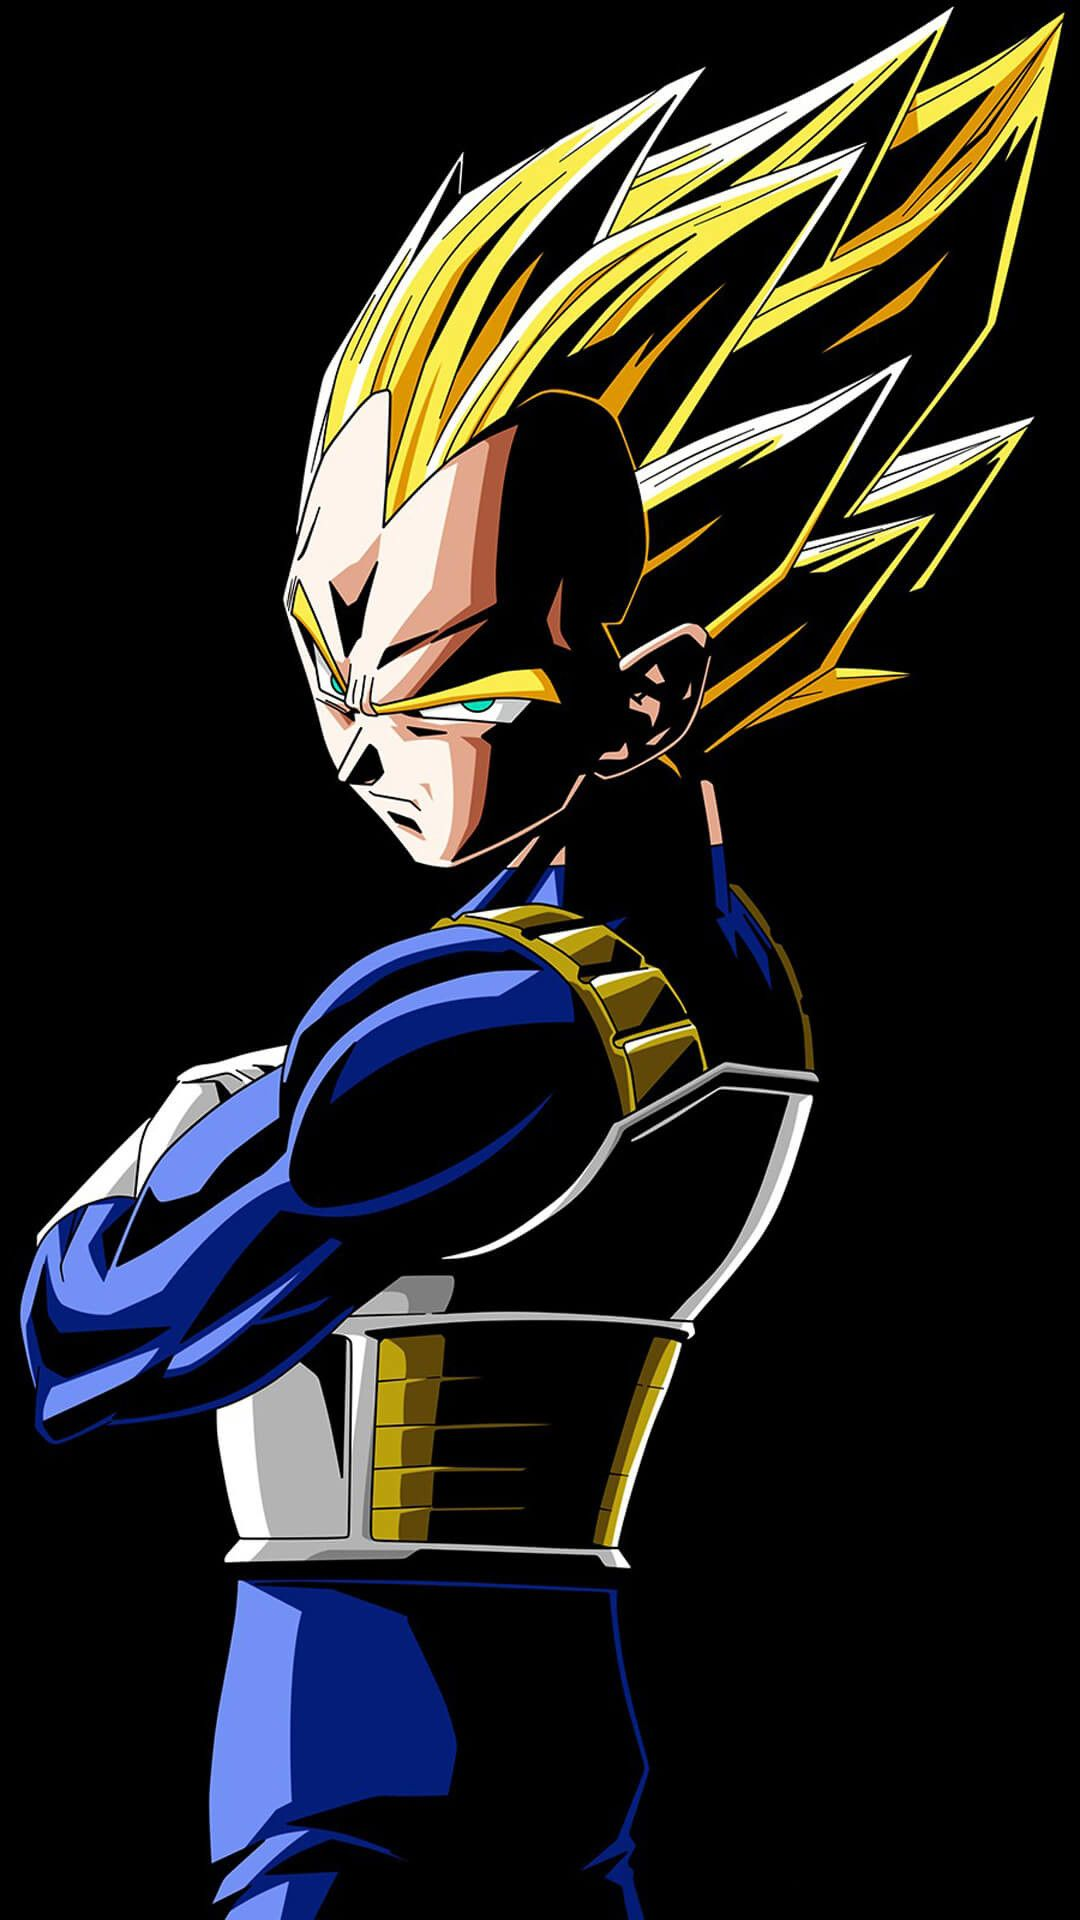 1080x1920 Dragon Ball Z Vegeta Iphone Wallpaper